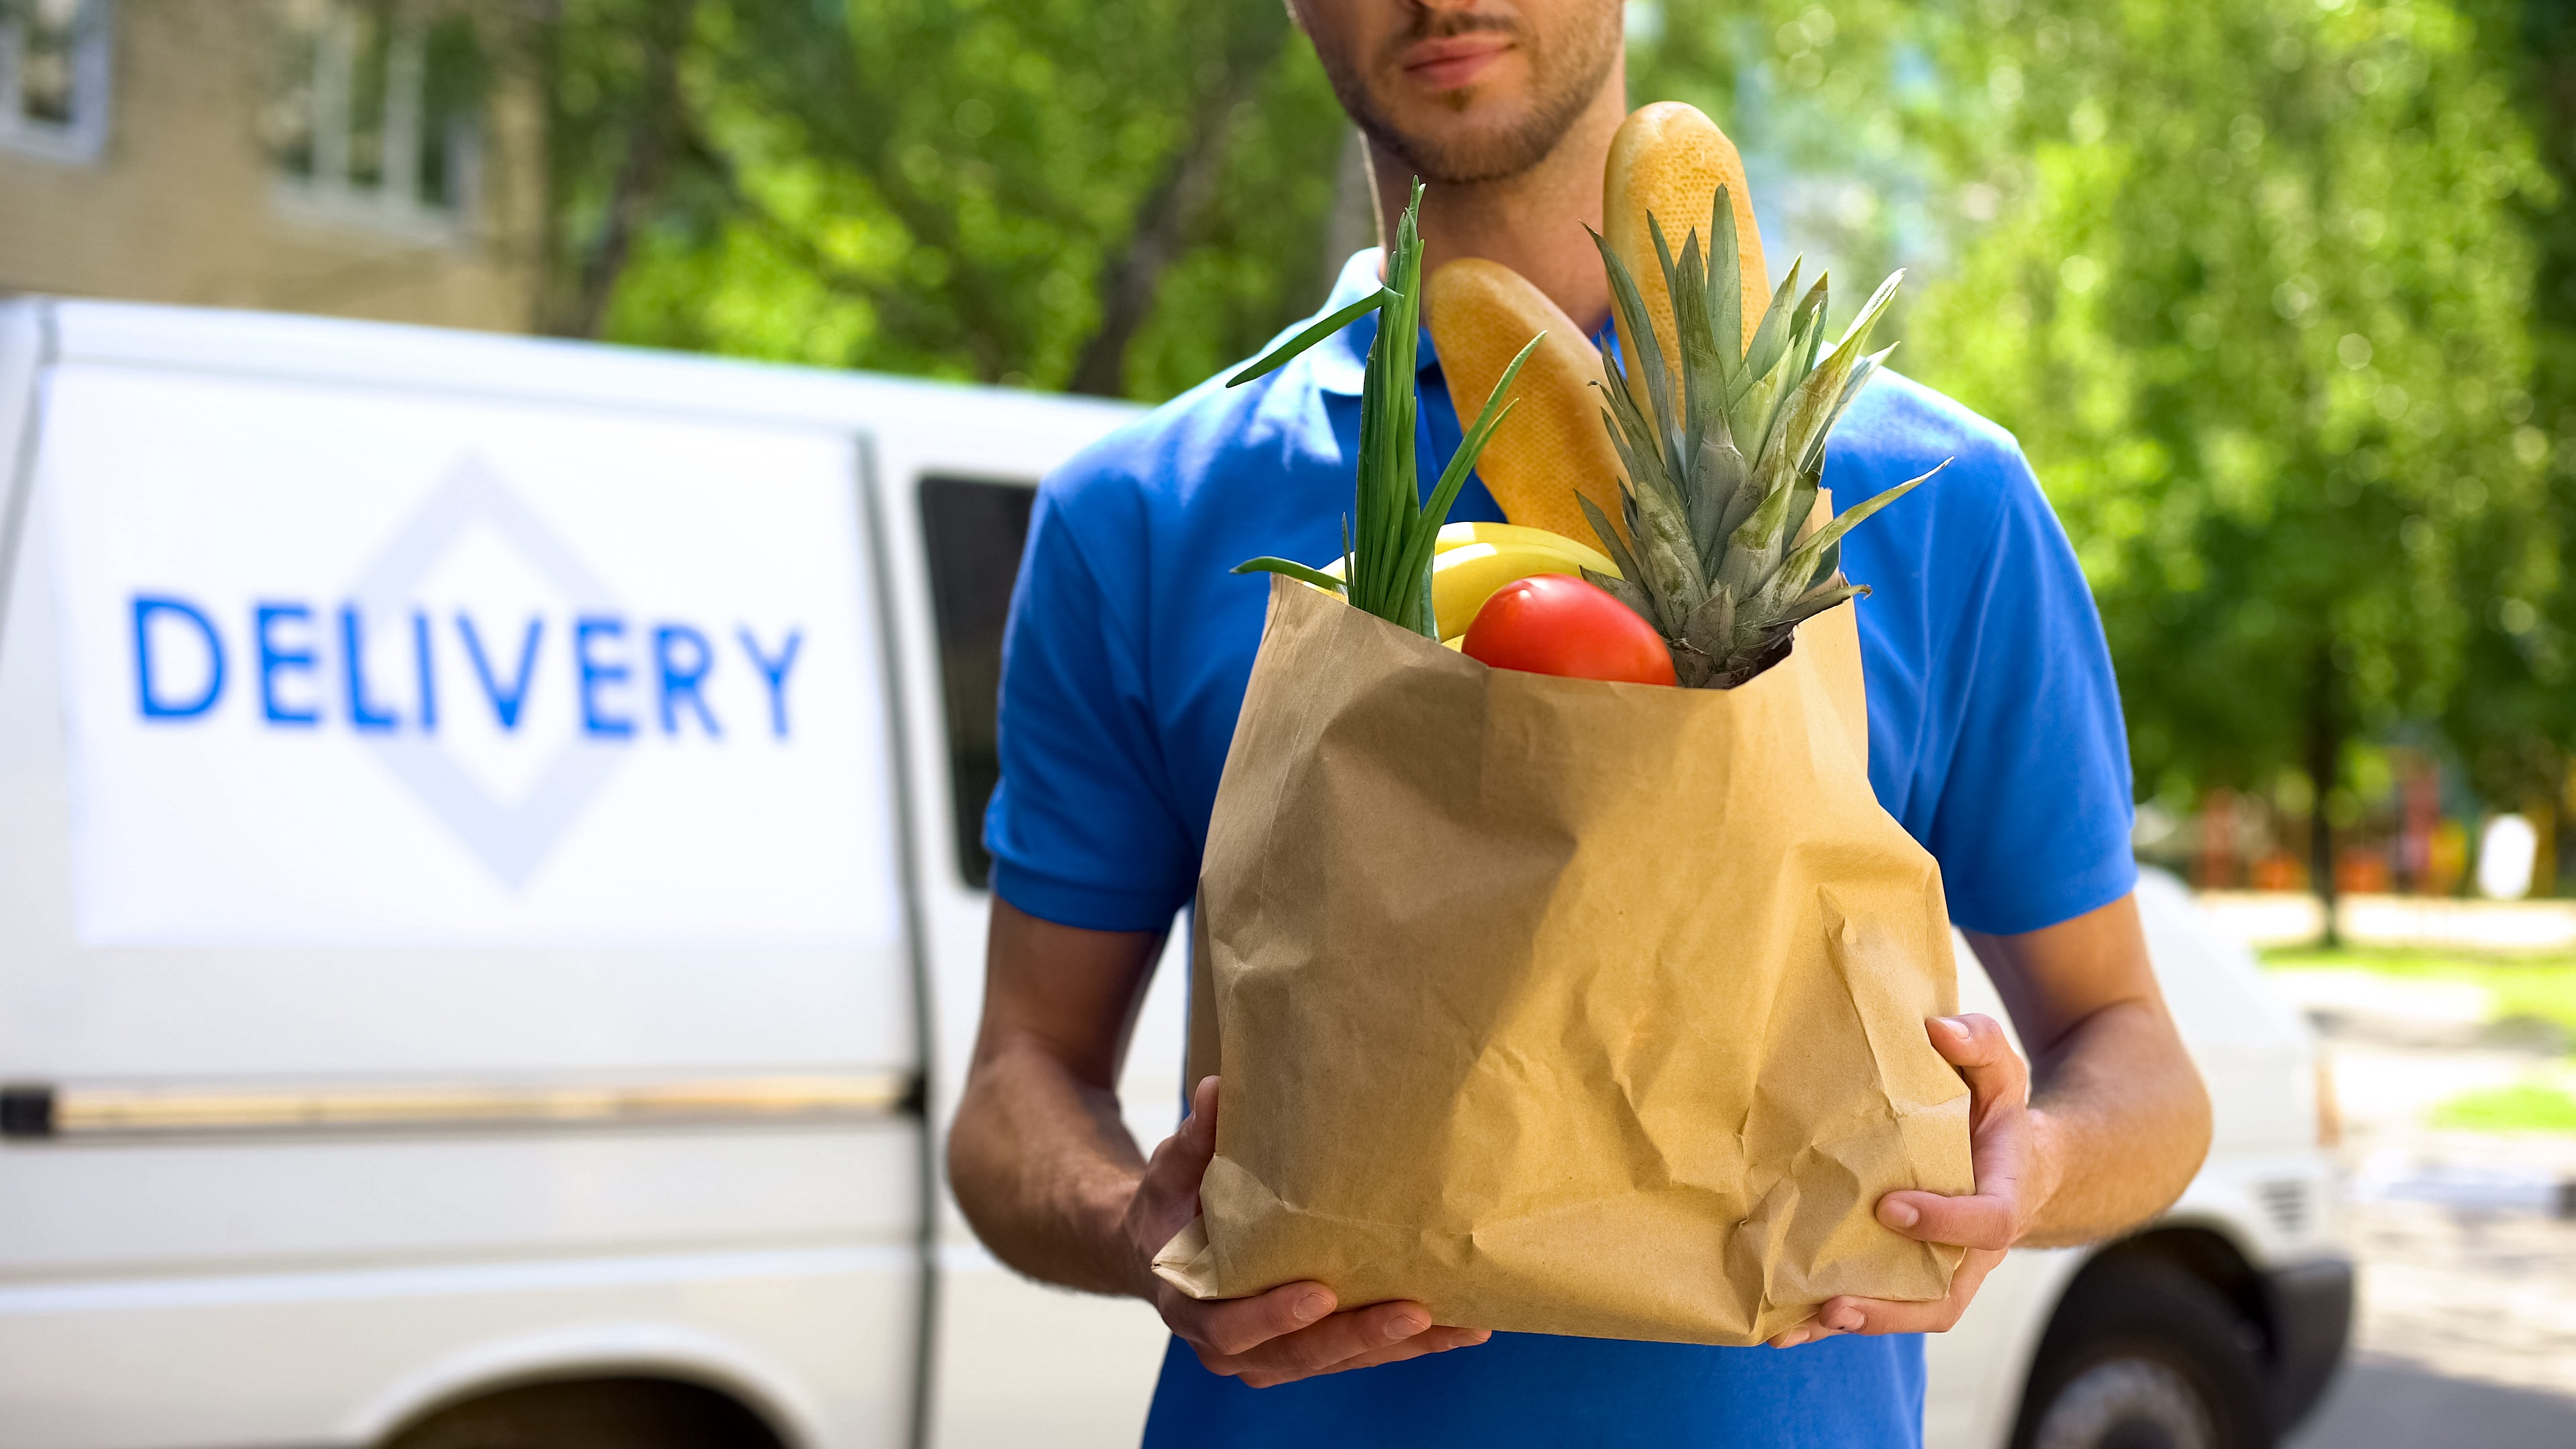 A delivery person brings groceries to a customer's door.